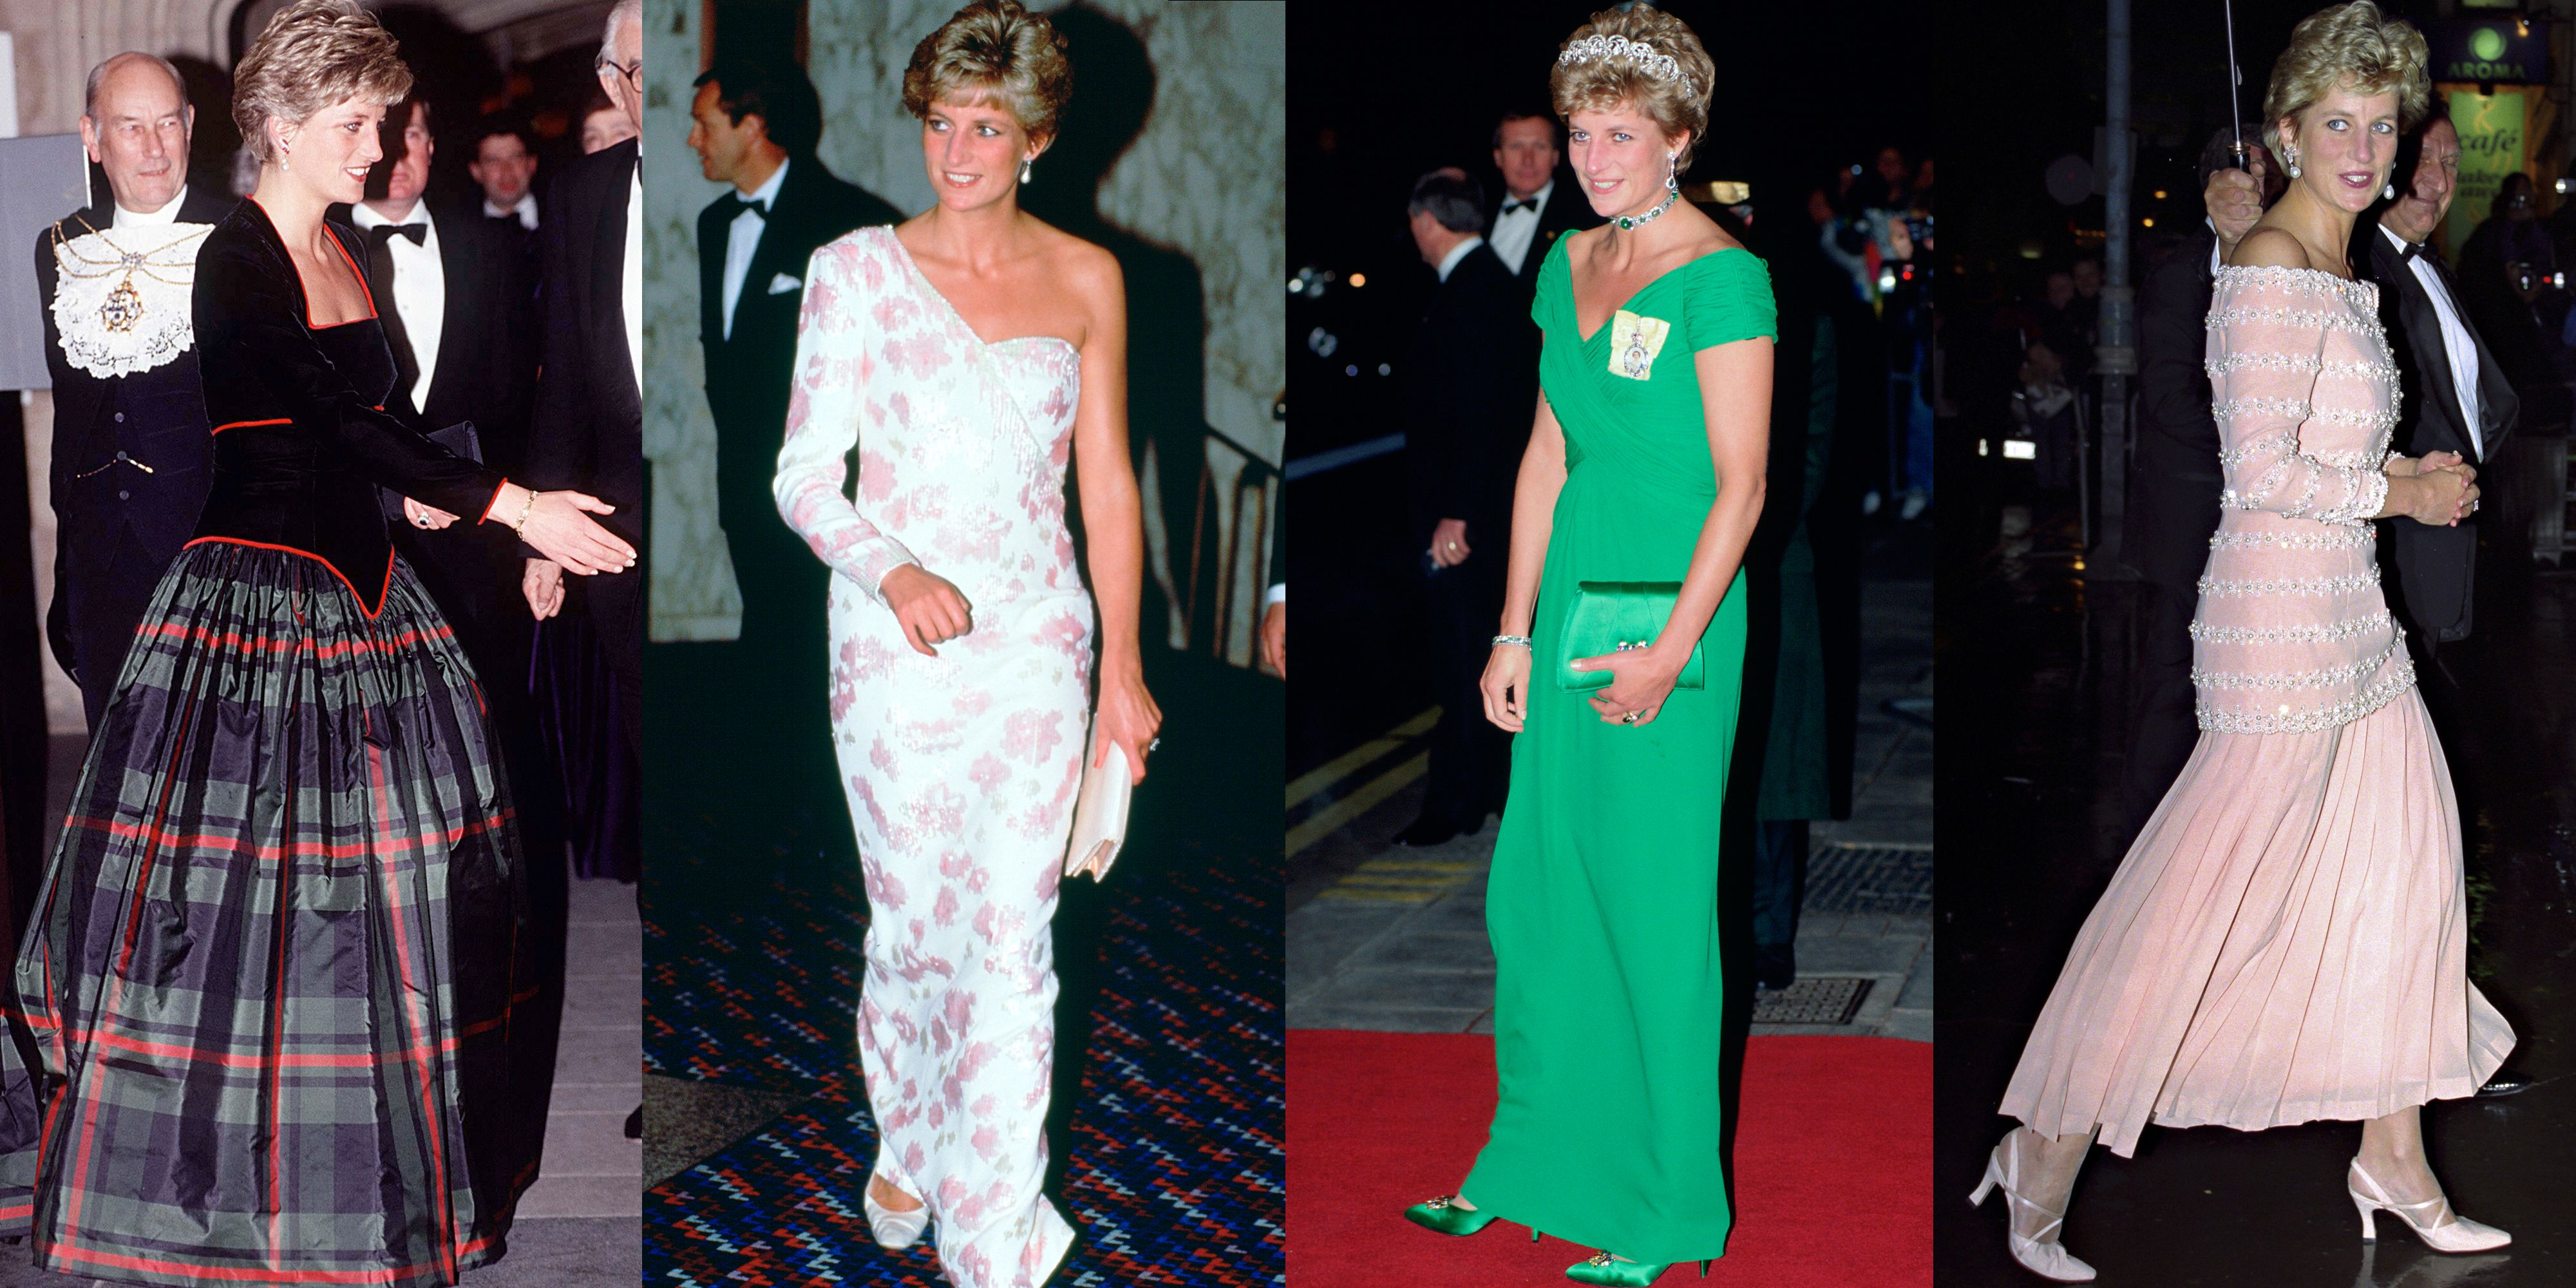 New Kensington Palace Fashion Exhibit Features Pieces From Princess Diana S Closet Kensington Palace Fashion Rules